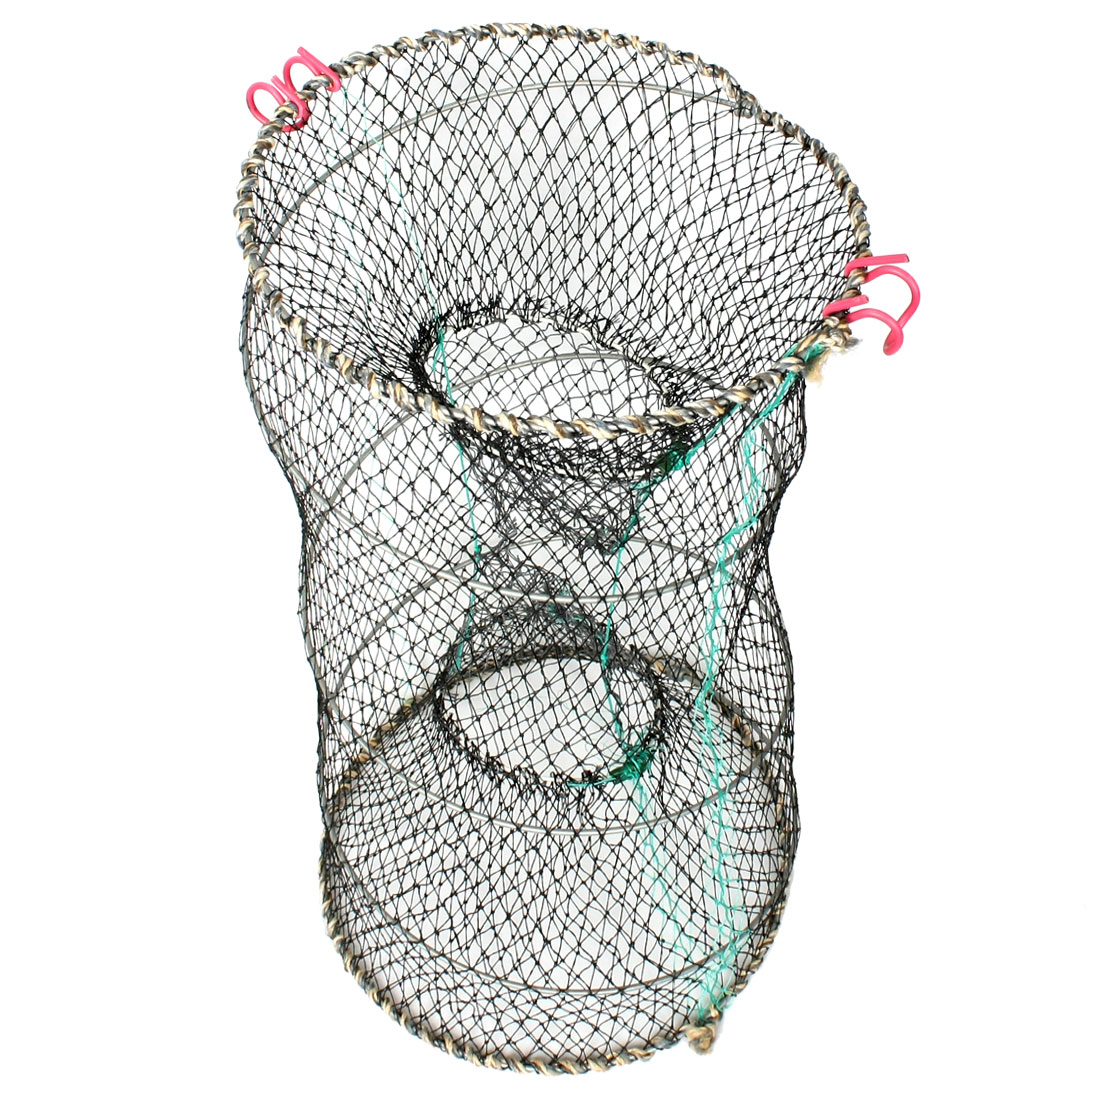 Crab Crawfish Shrimp Foldable Black Fishing Keep Net 16.5""